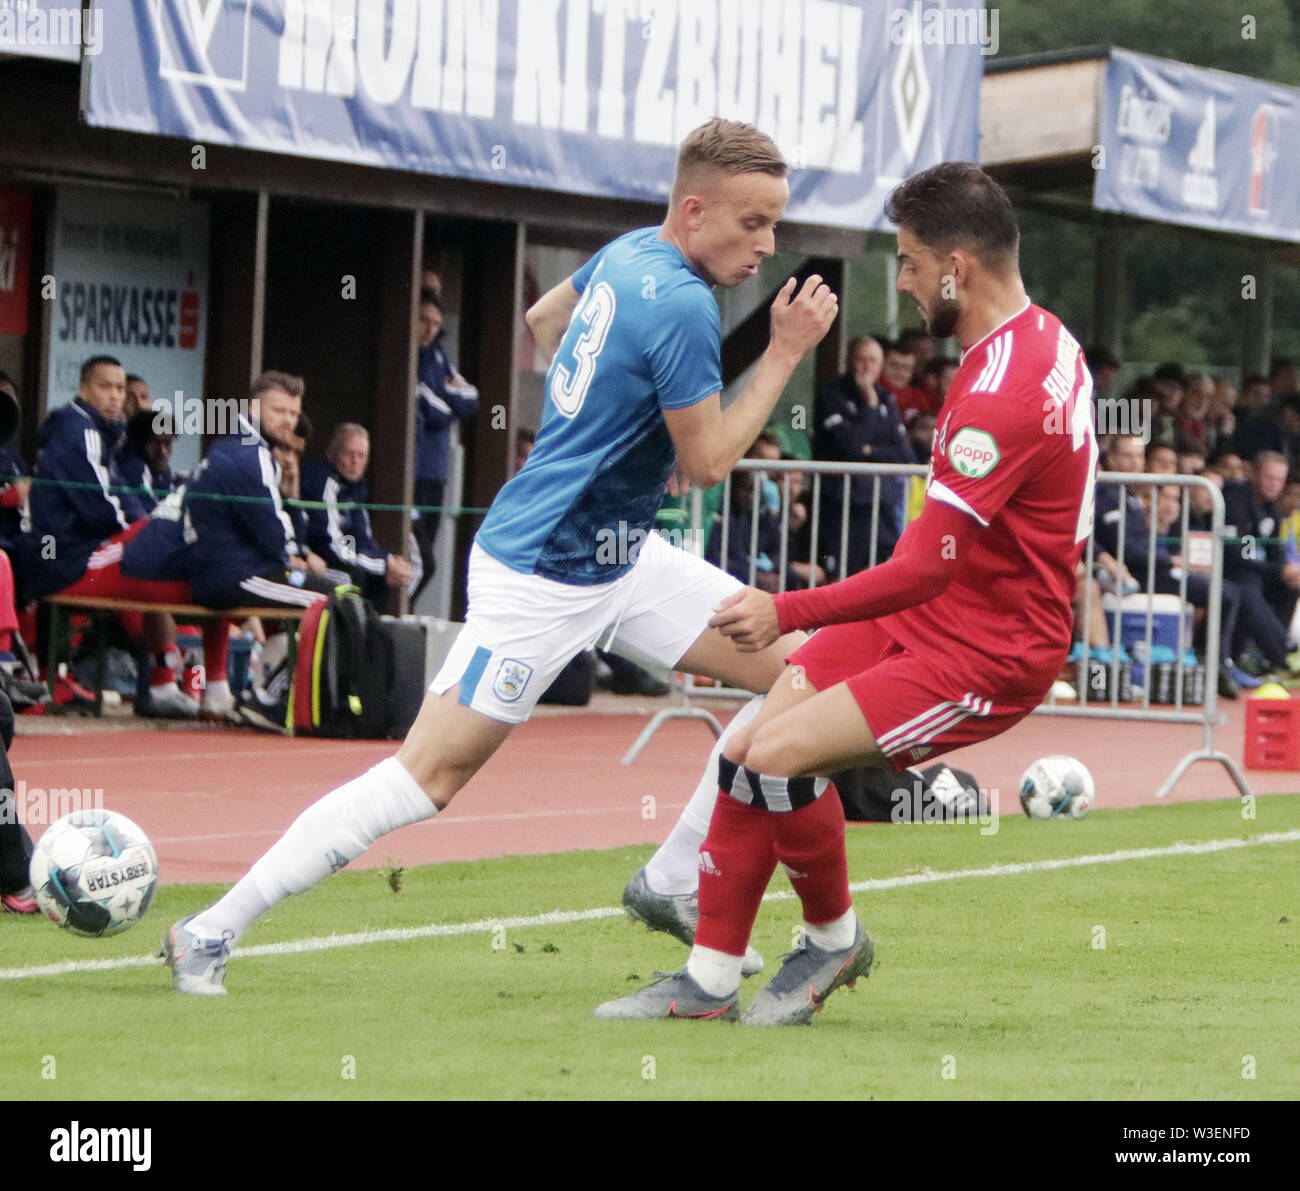 July 13, 2019 - Kitzbuehel, Austria - fromright Khaled NAREY (Hamburg), Florent HADERGJONAJ  ( Huddersfield).pre season friendly 2019/20, .Huddersfield Town FC vs Hamburger SV,.Stadion Kitzbuehel/Austria, July 13, 2019, .Huddersfield Town, the relegated team of the Premiere League wins in a pre season friendly against the former German champion Hamburger SV (Credit Image: © Wolfgang Fehrmann/ZUMA Wire) - Stock Image